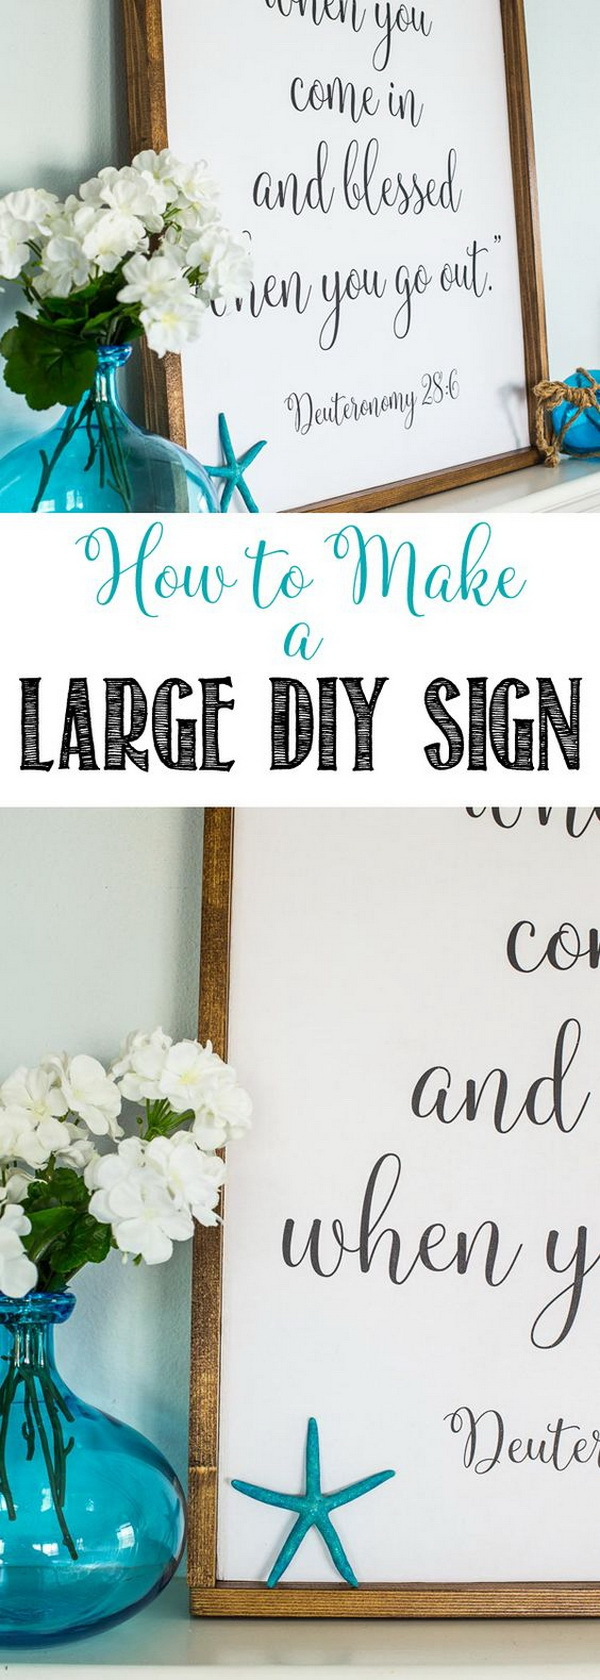 Large DIY Mantel Sign. It is time to put away your drab winter decor and give your home a fresh new makeover for summer with this nautical DIY framed sign! Perfect for your mantel decor this spring or summer season!